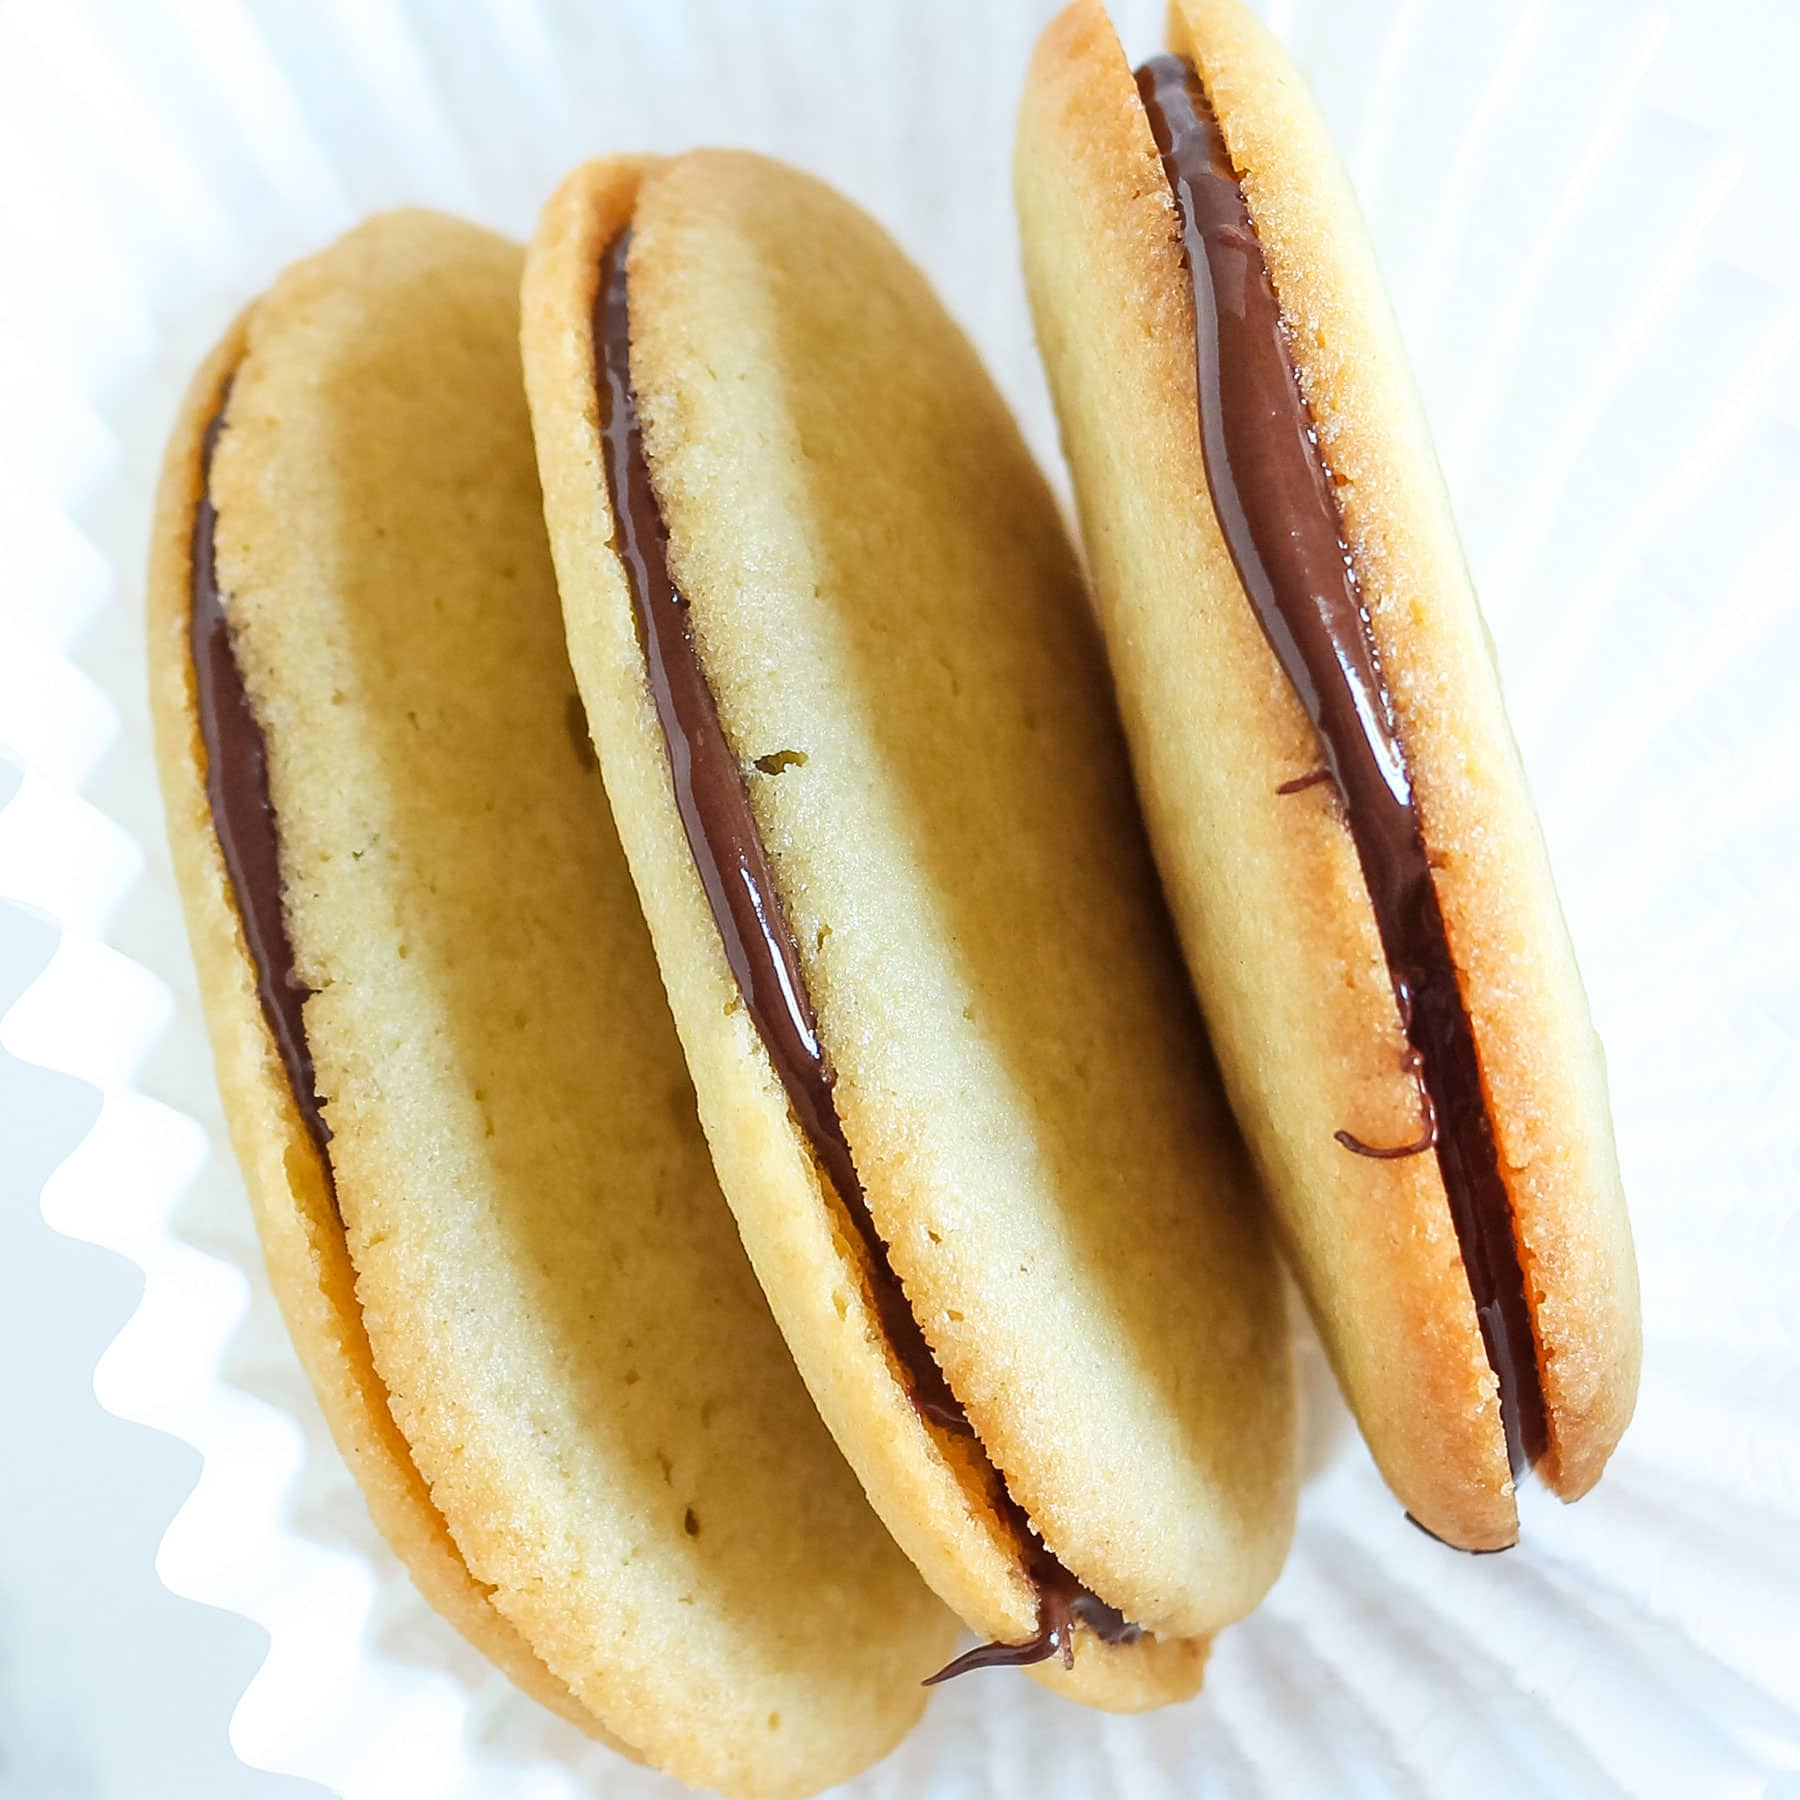 Homemade Milano Cookies are easier than you think!